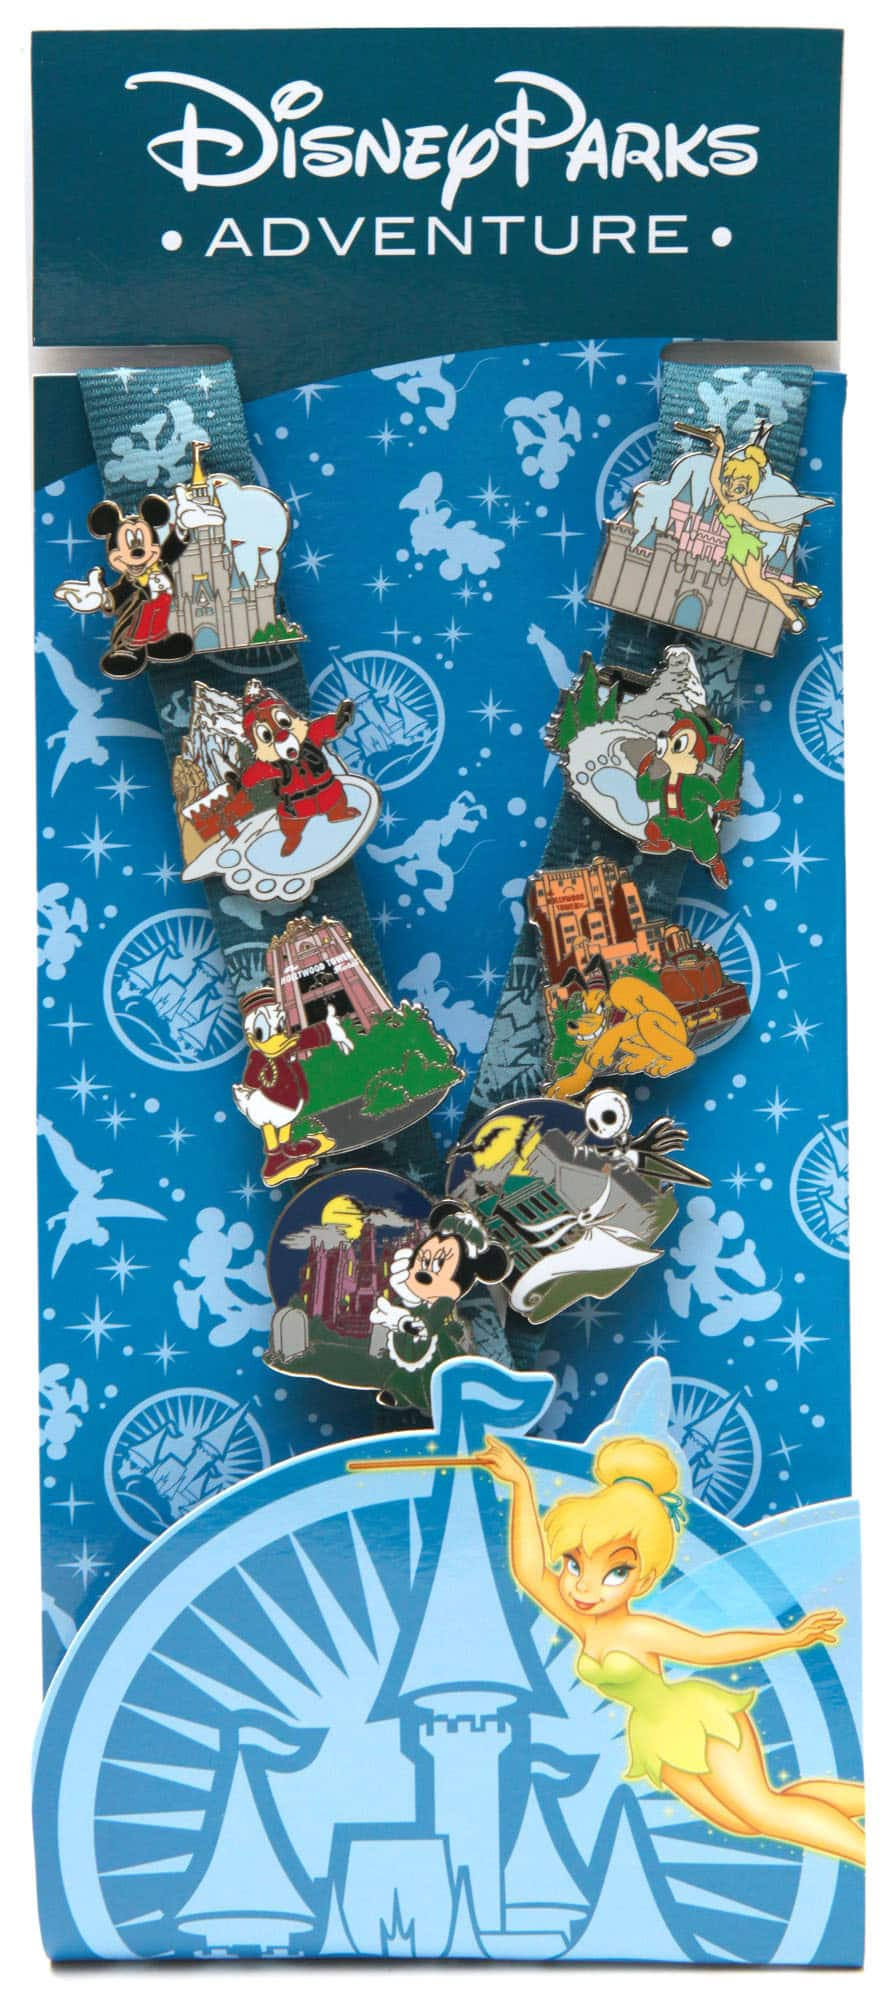 Exclusive Pins Come to Disney Parks Online Store | Disney